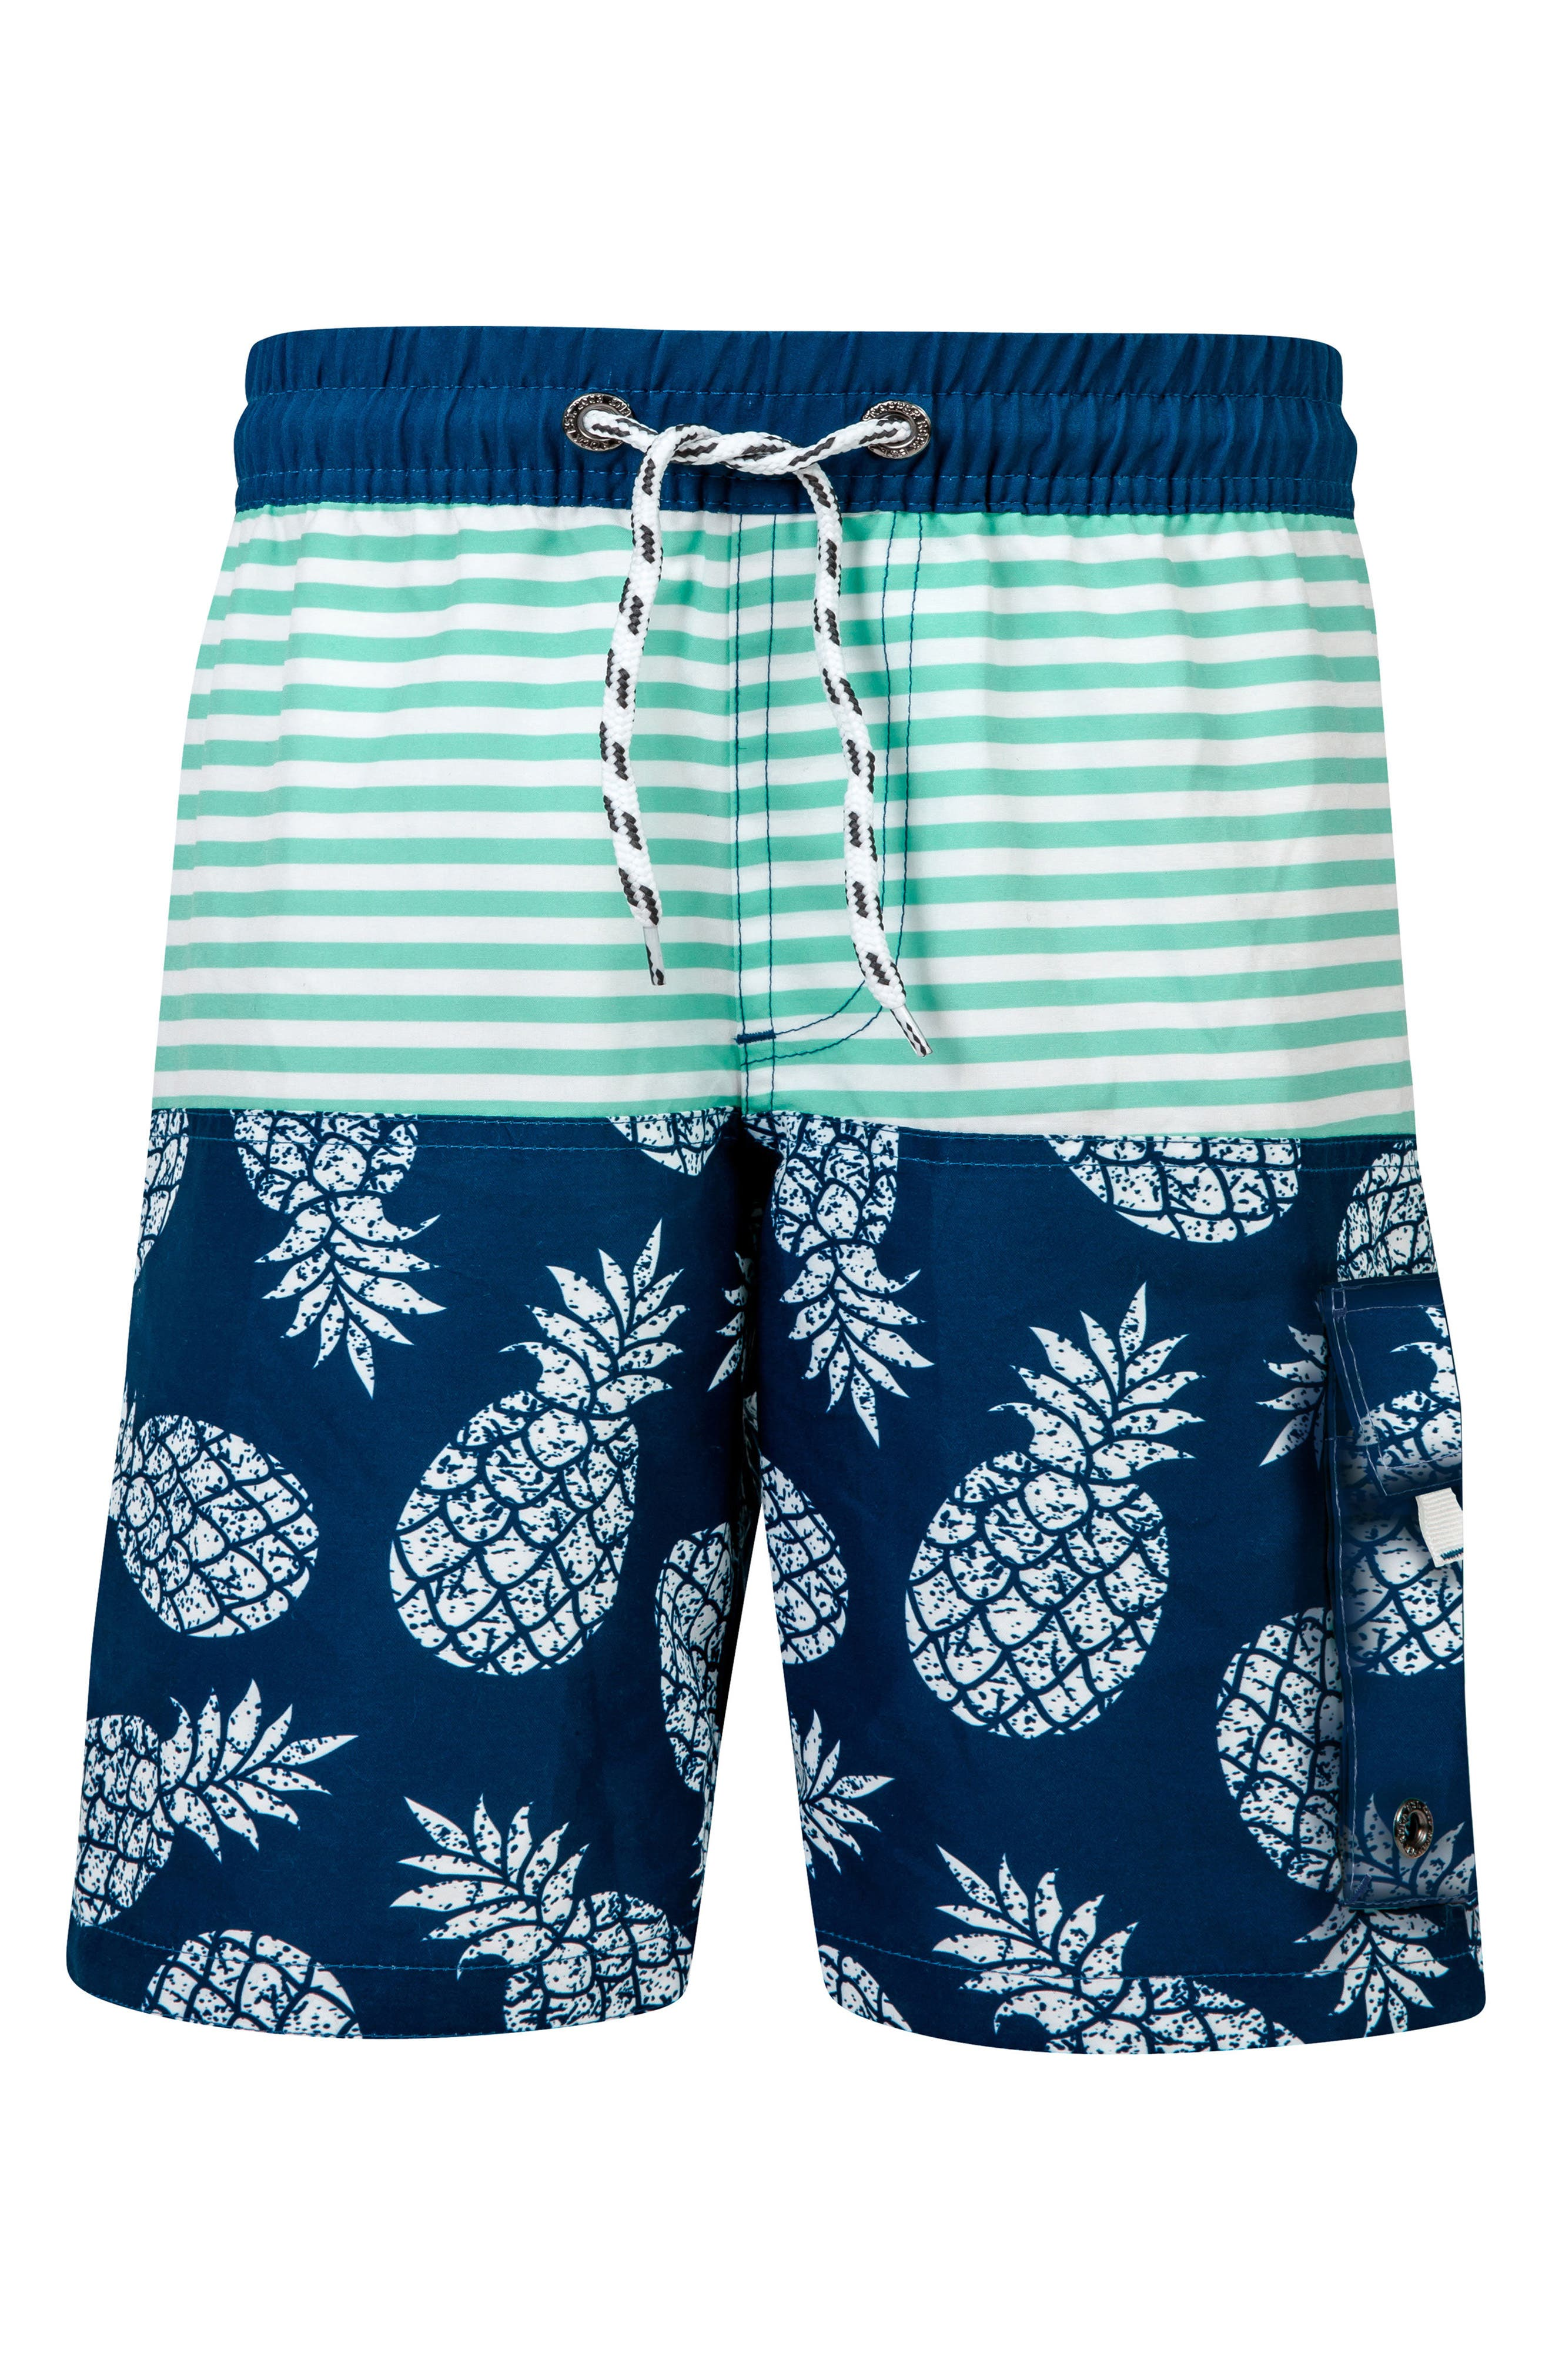 Snapper Rock Pineapple Mint Stripe Board Shorts (Baby Boys, Toddler Boys & Little Boys)